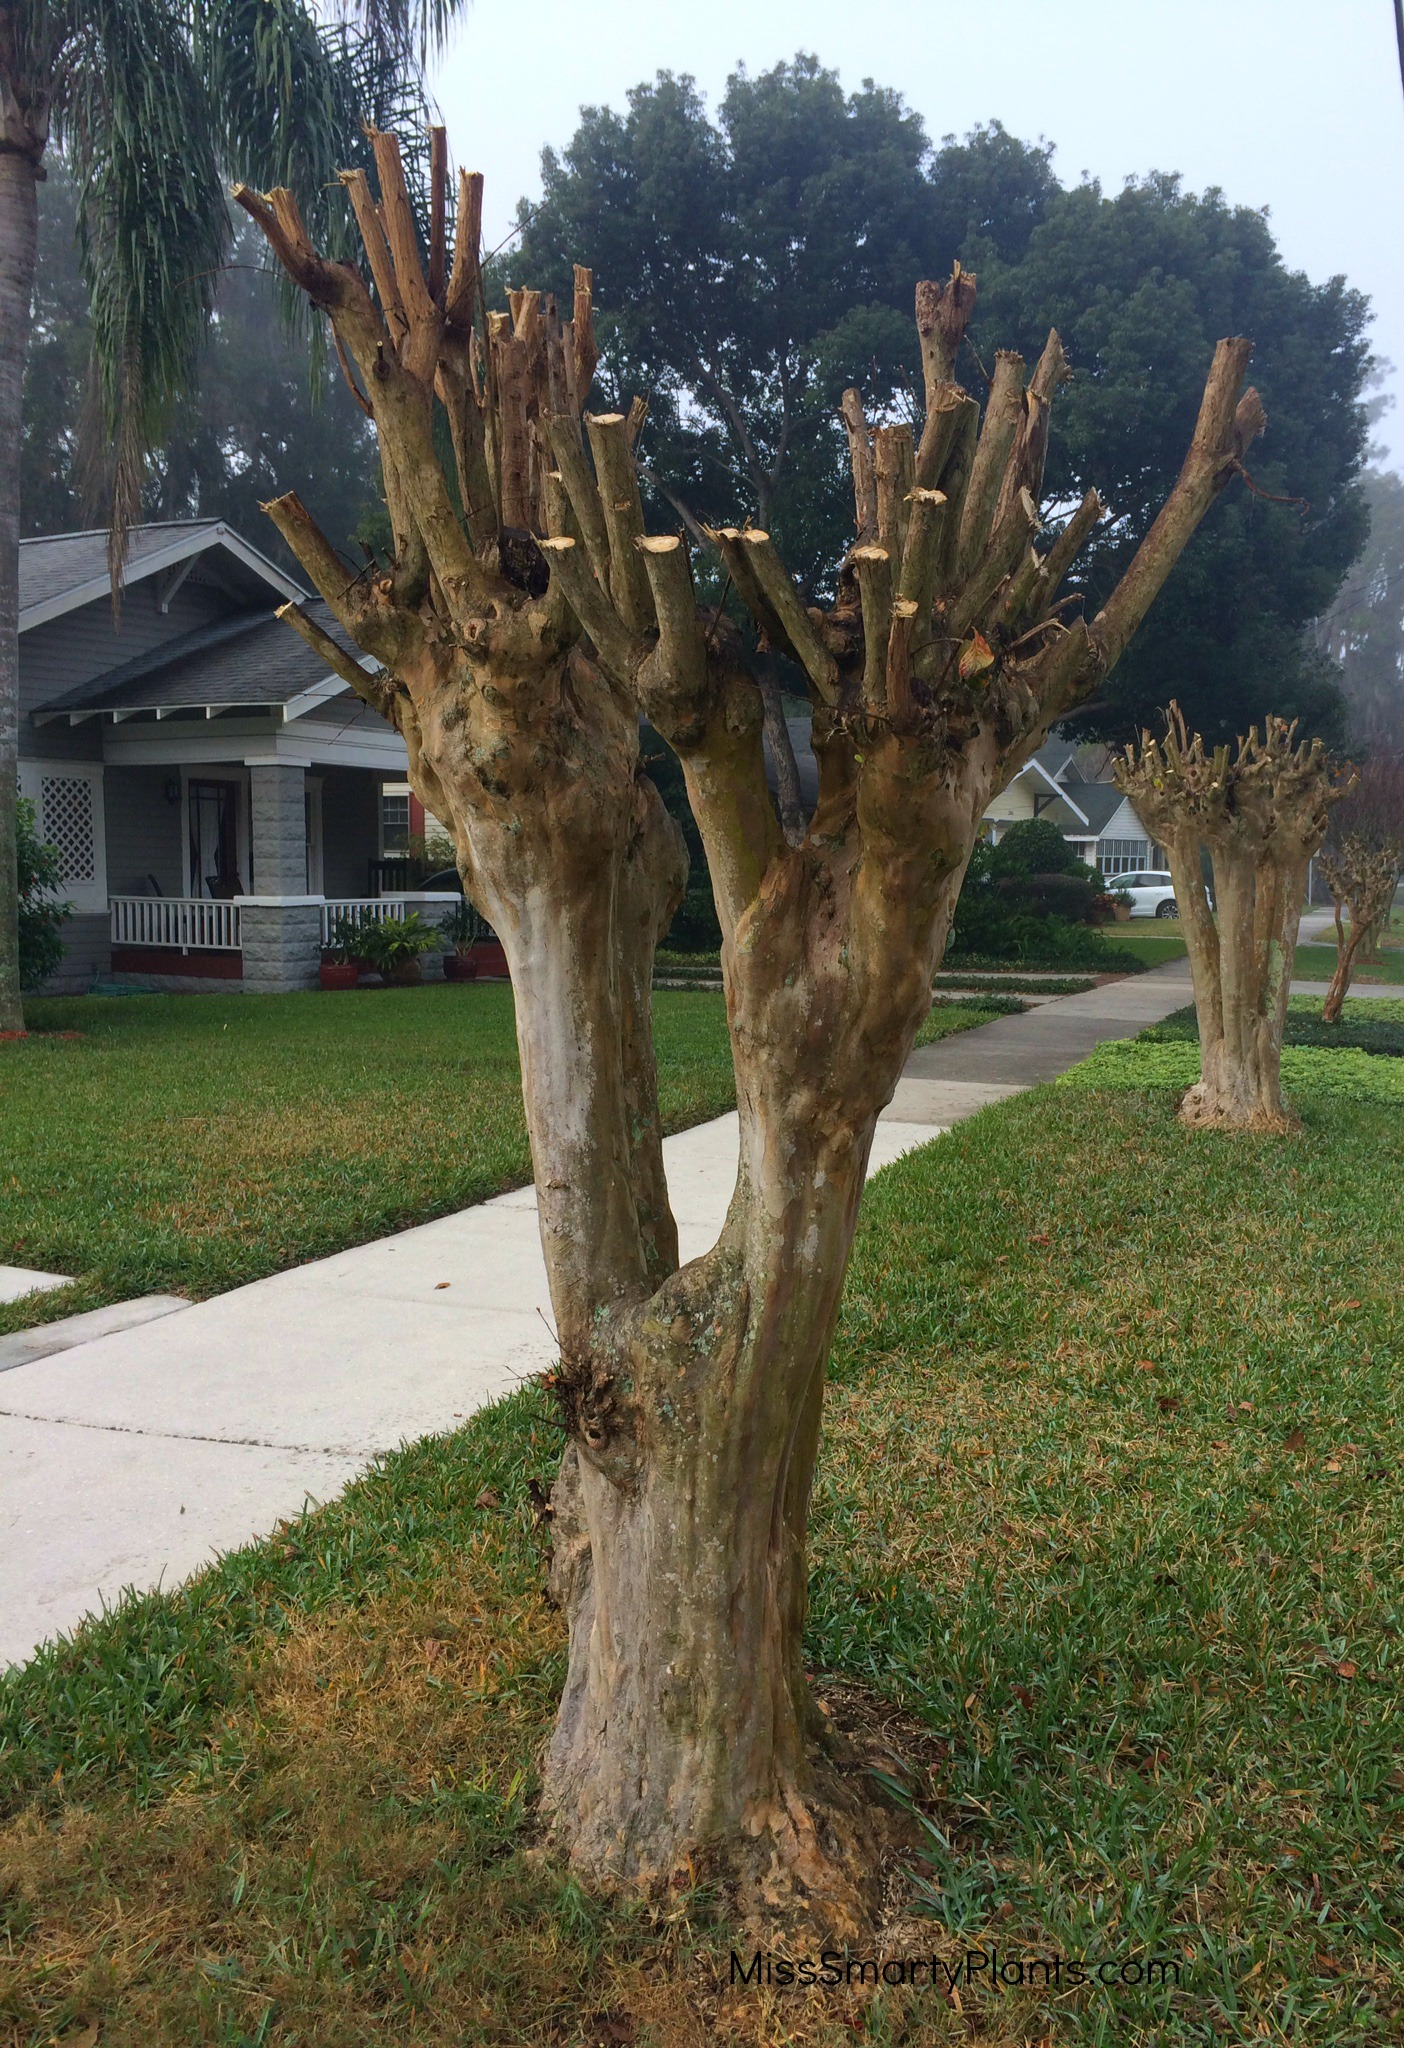 Pruning Crape Myrtle Miss Smarty Plants